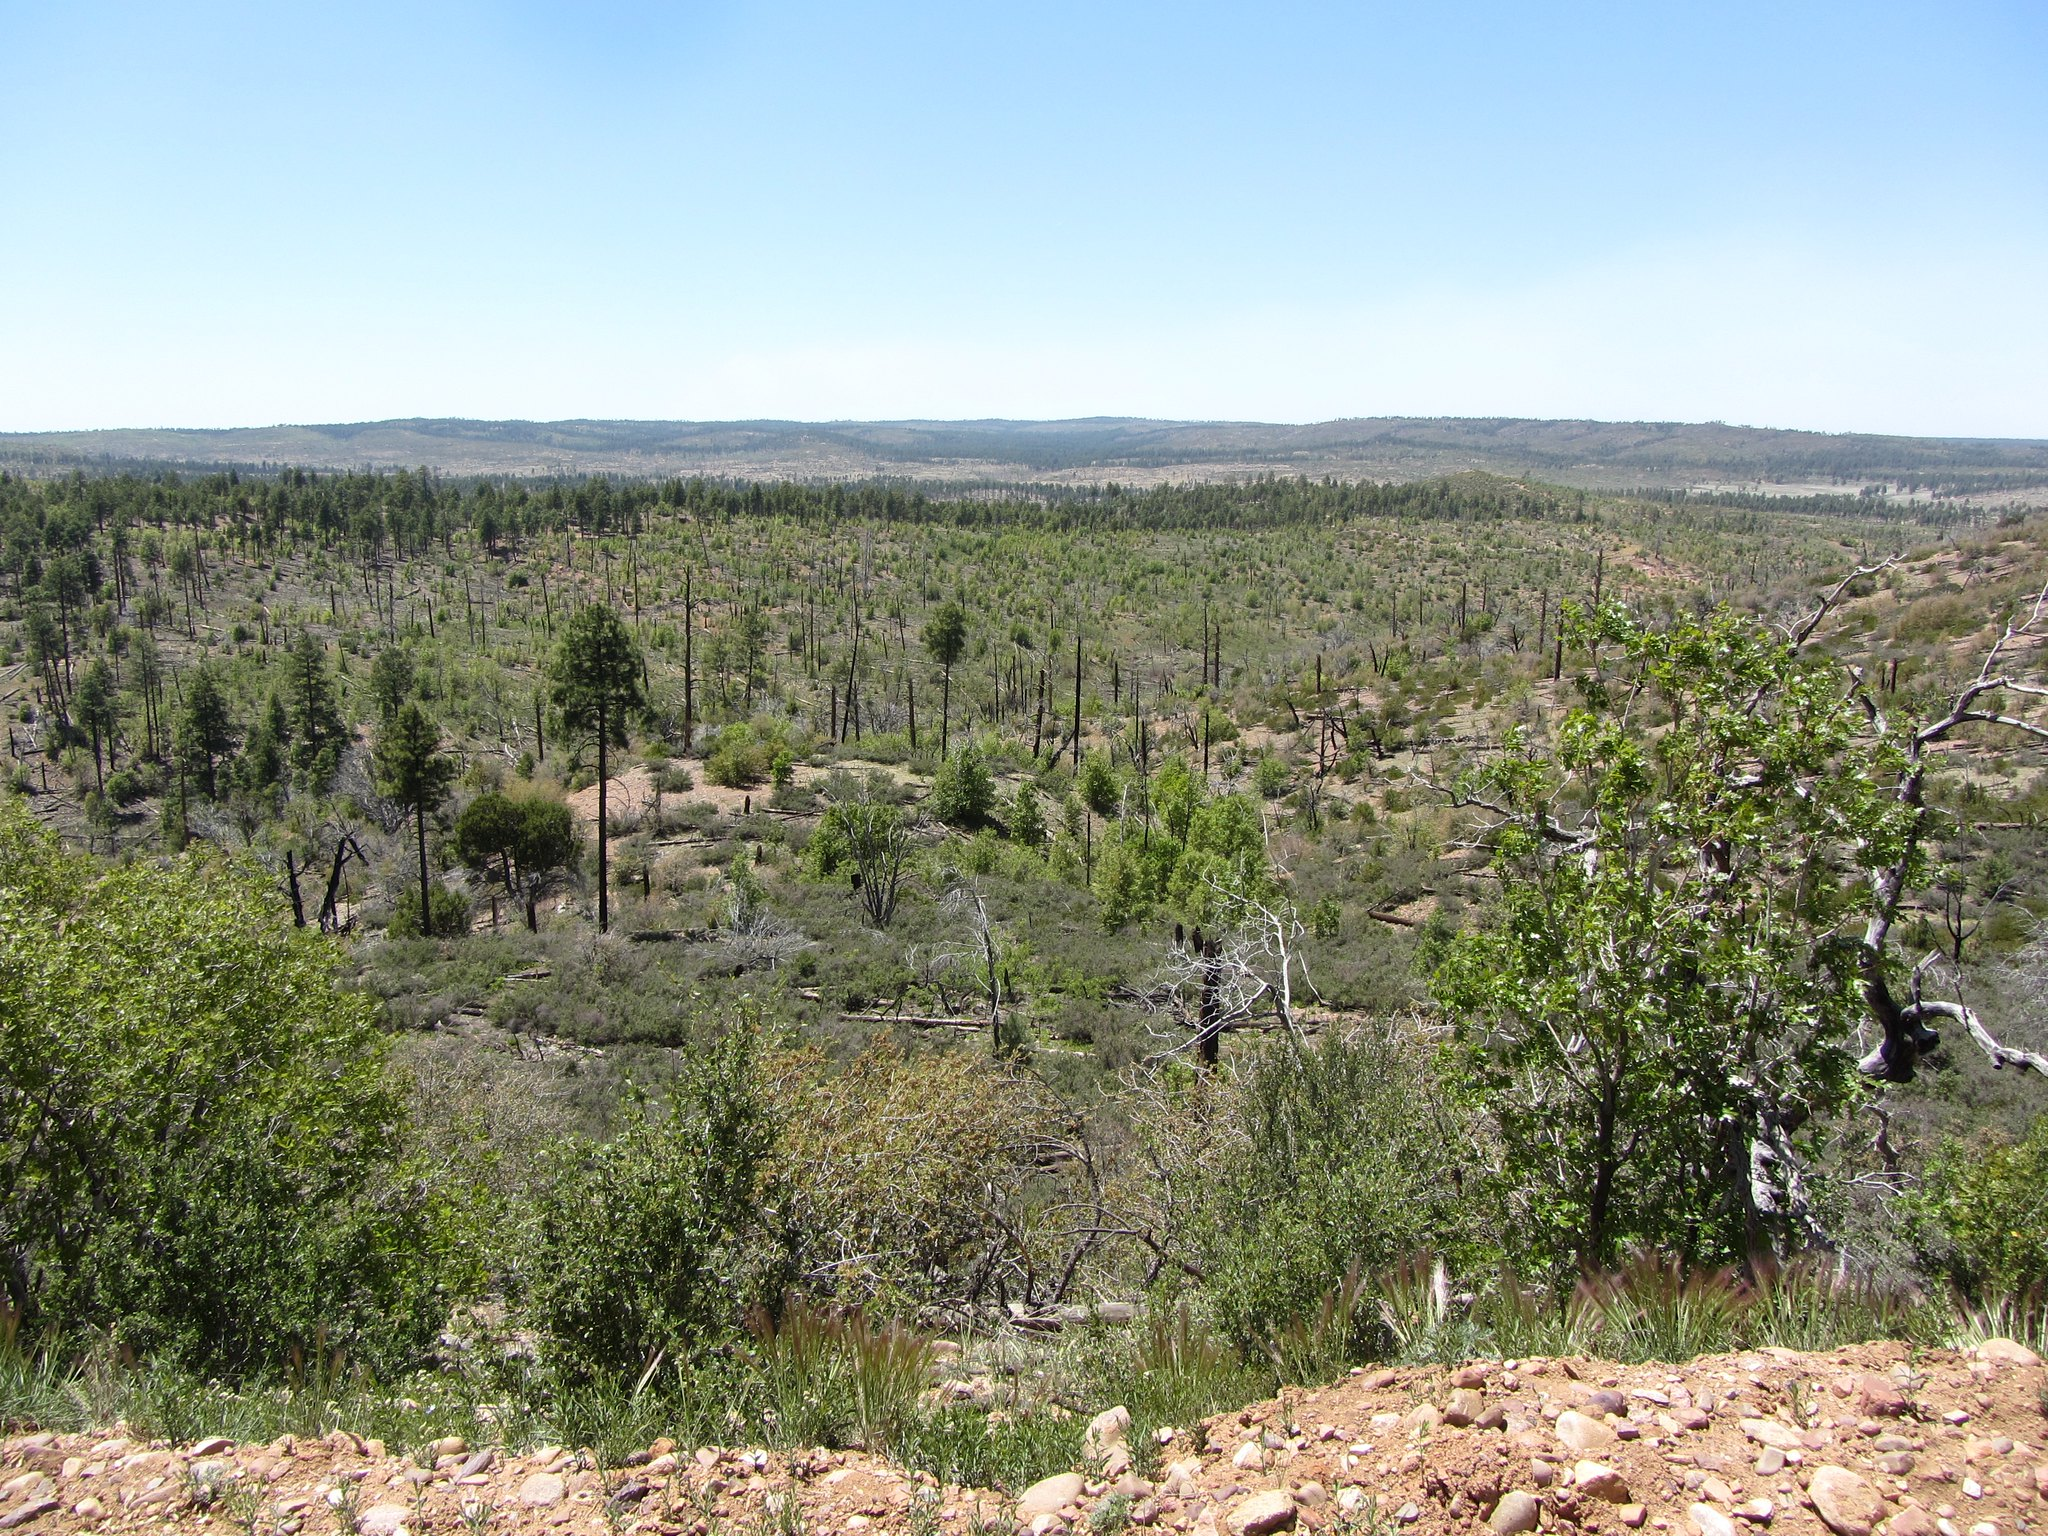 Forest 10 years after the Rodeo Chediski fire.